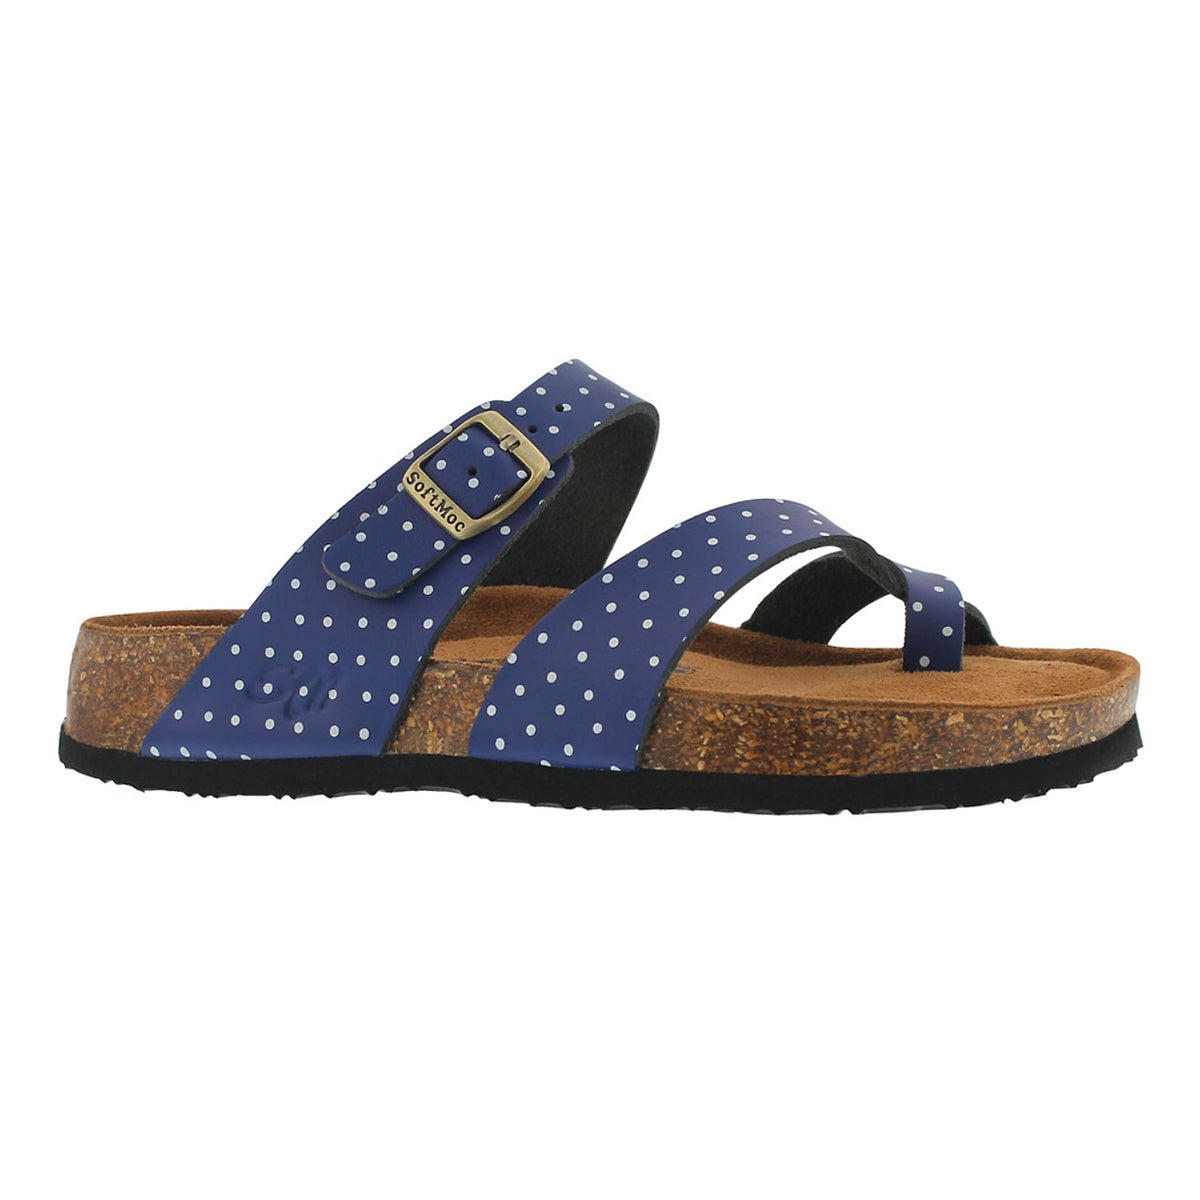 Women's ALICIA 5 navy/white memory foam sandals